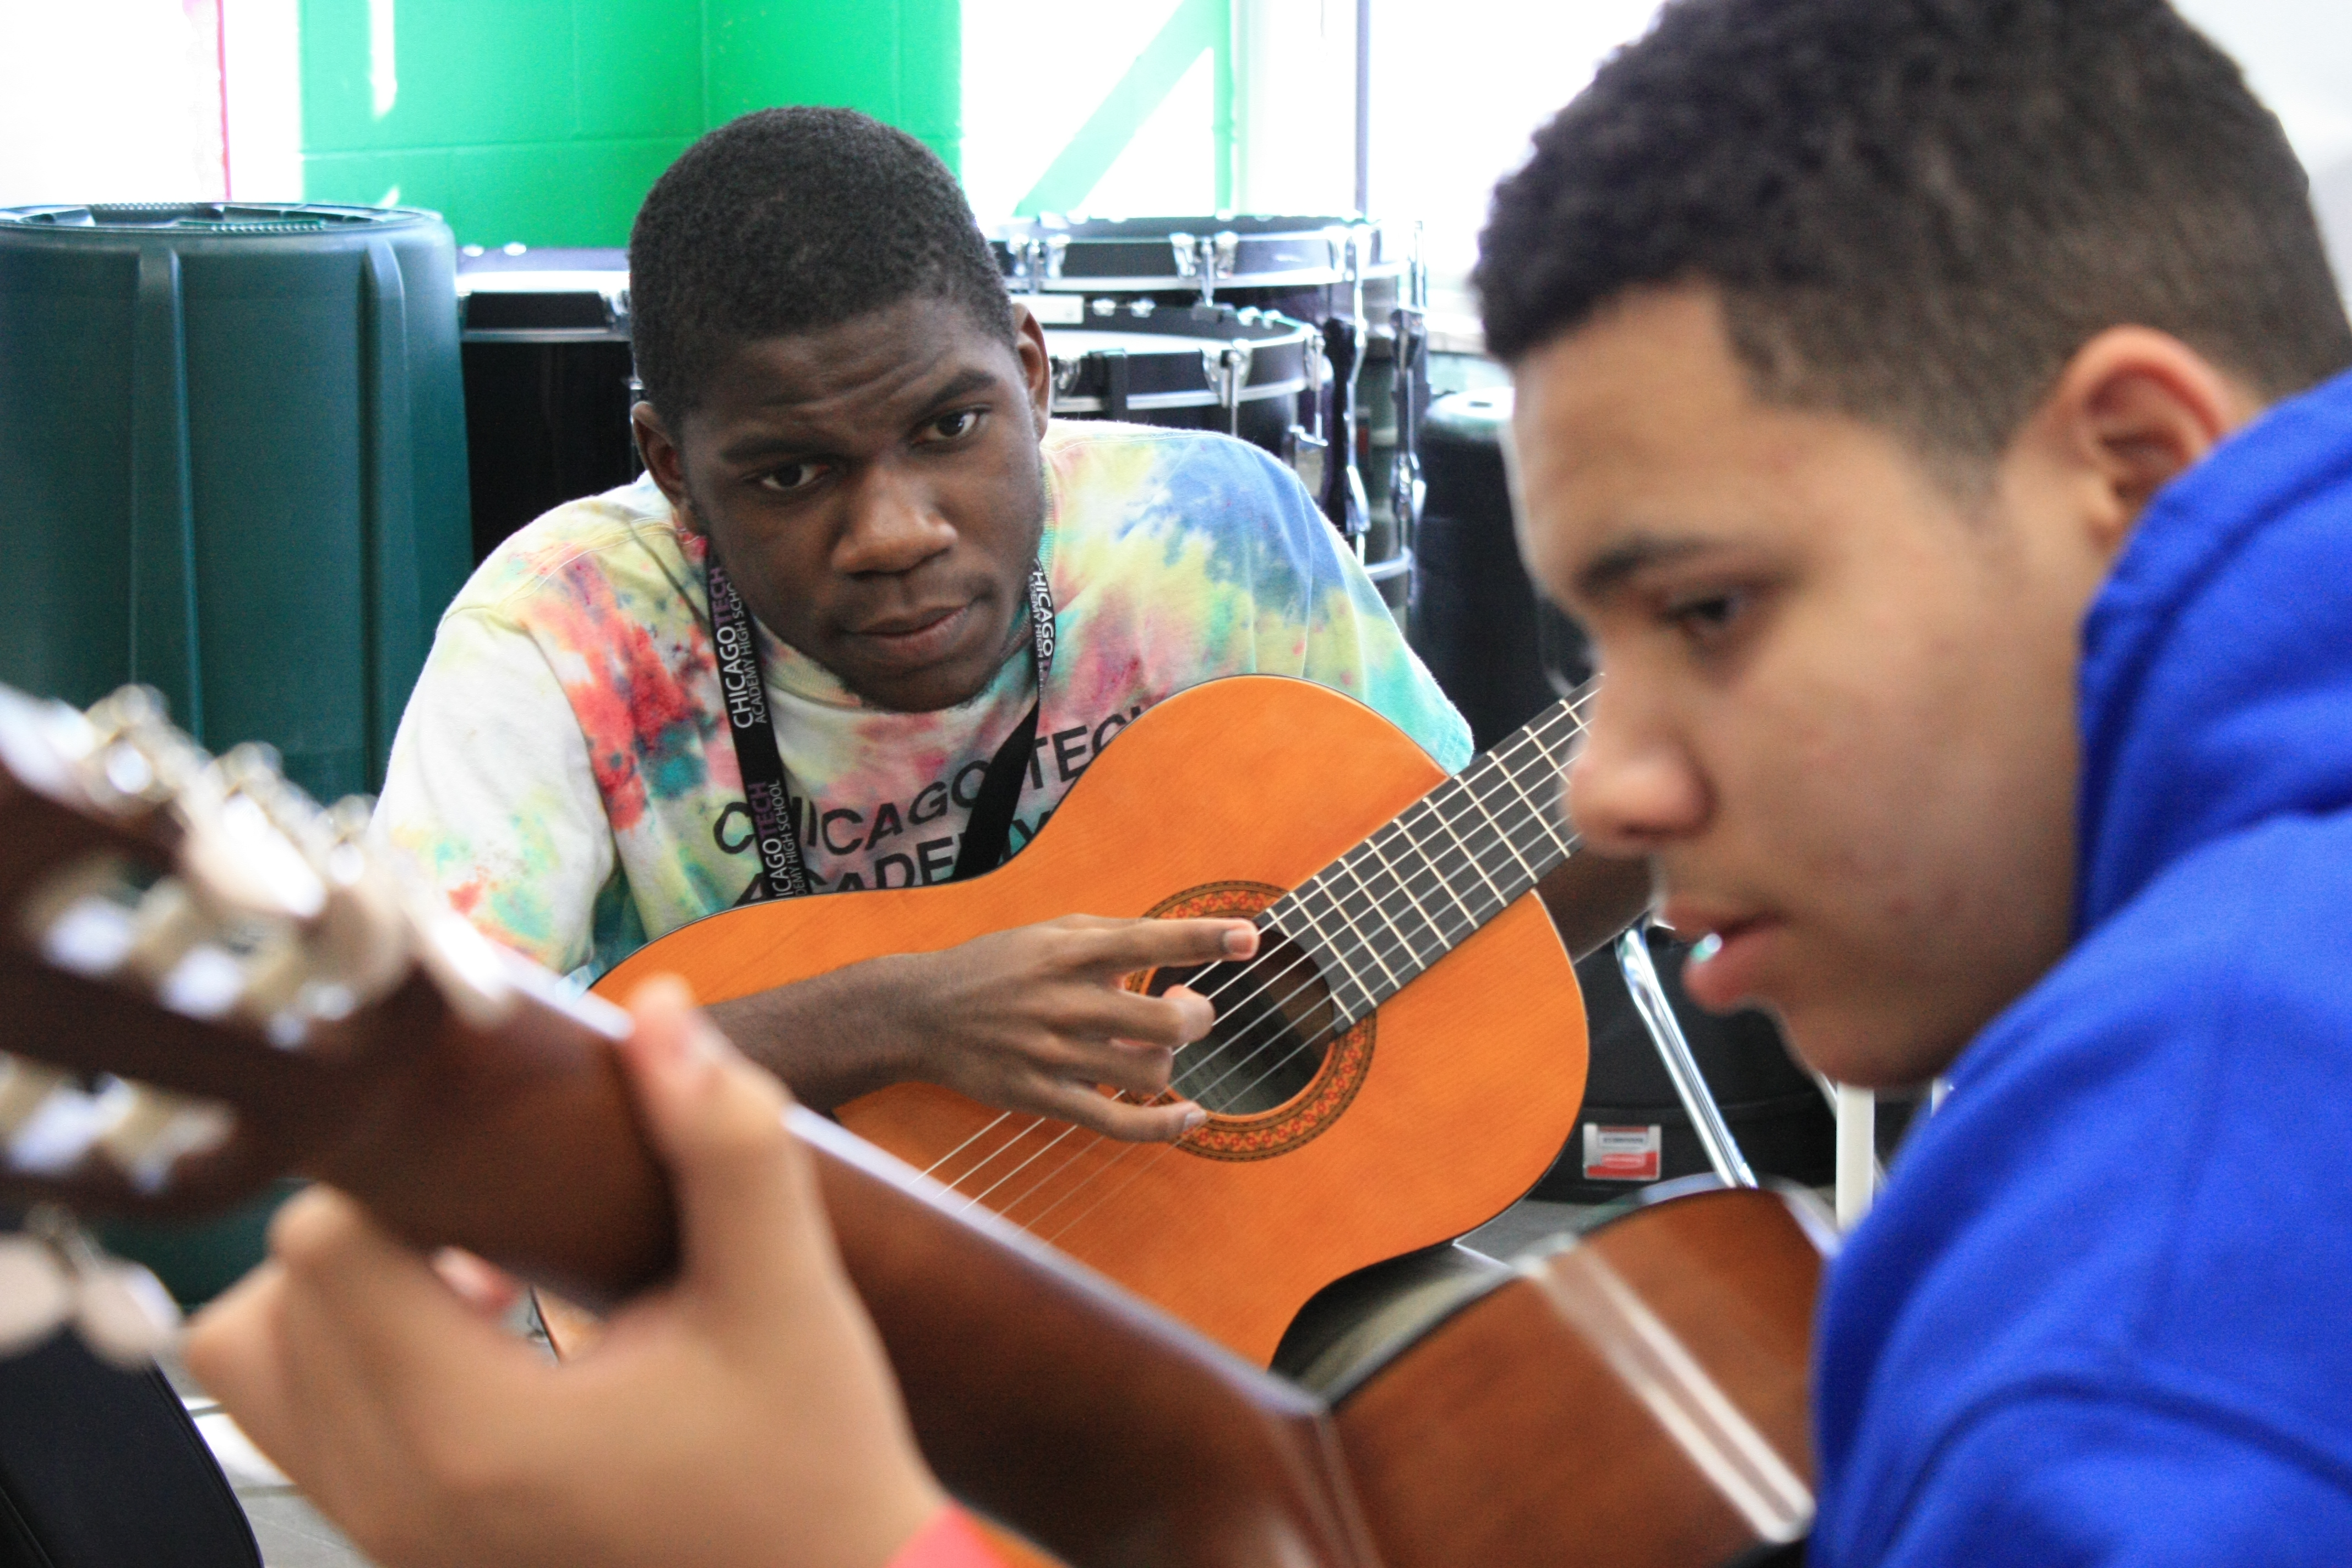 Lead Guitar high school students focus intently on playing a duo